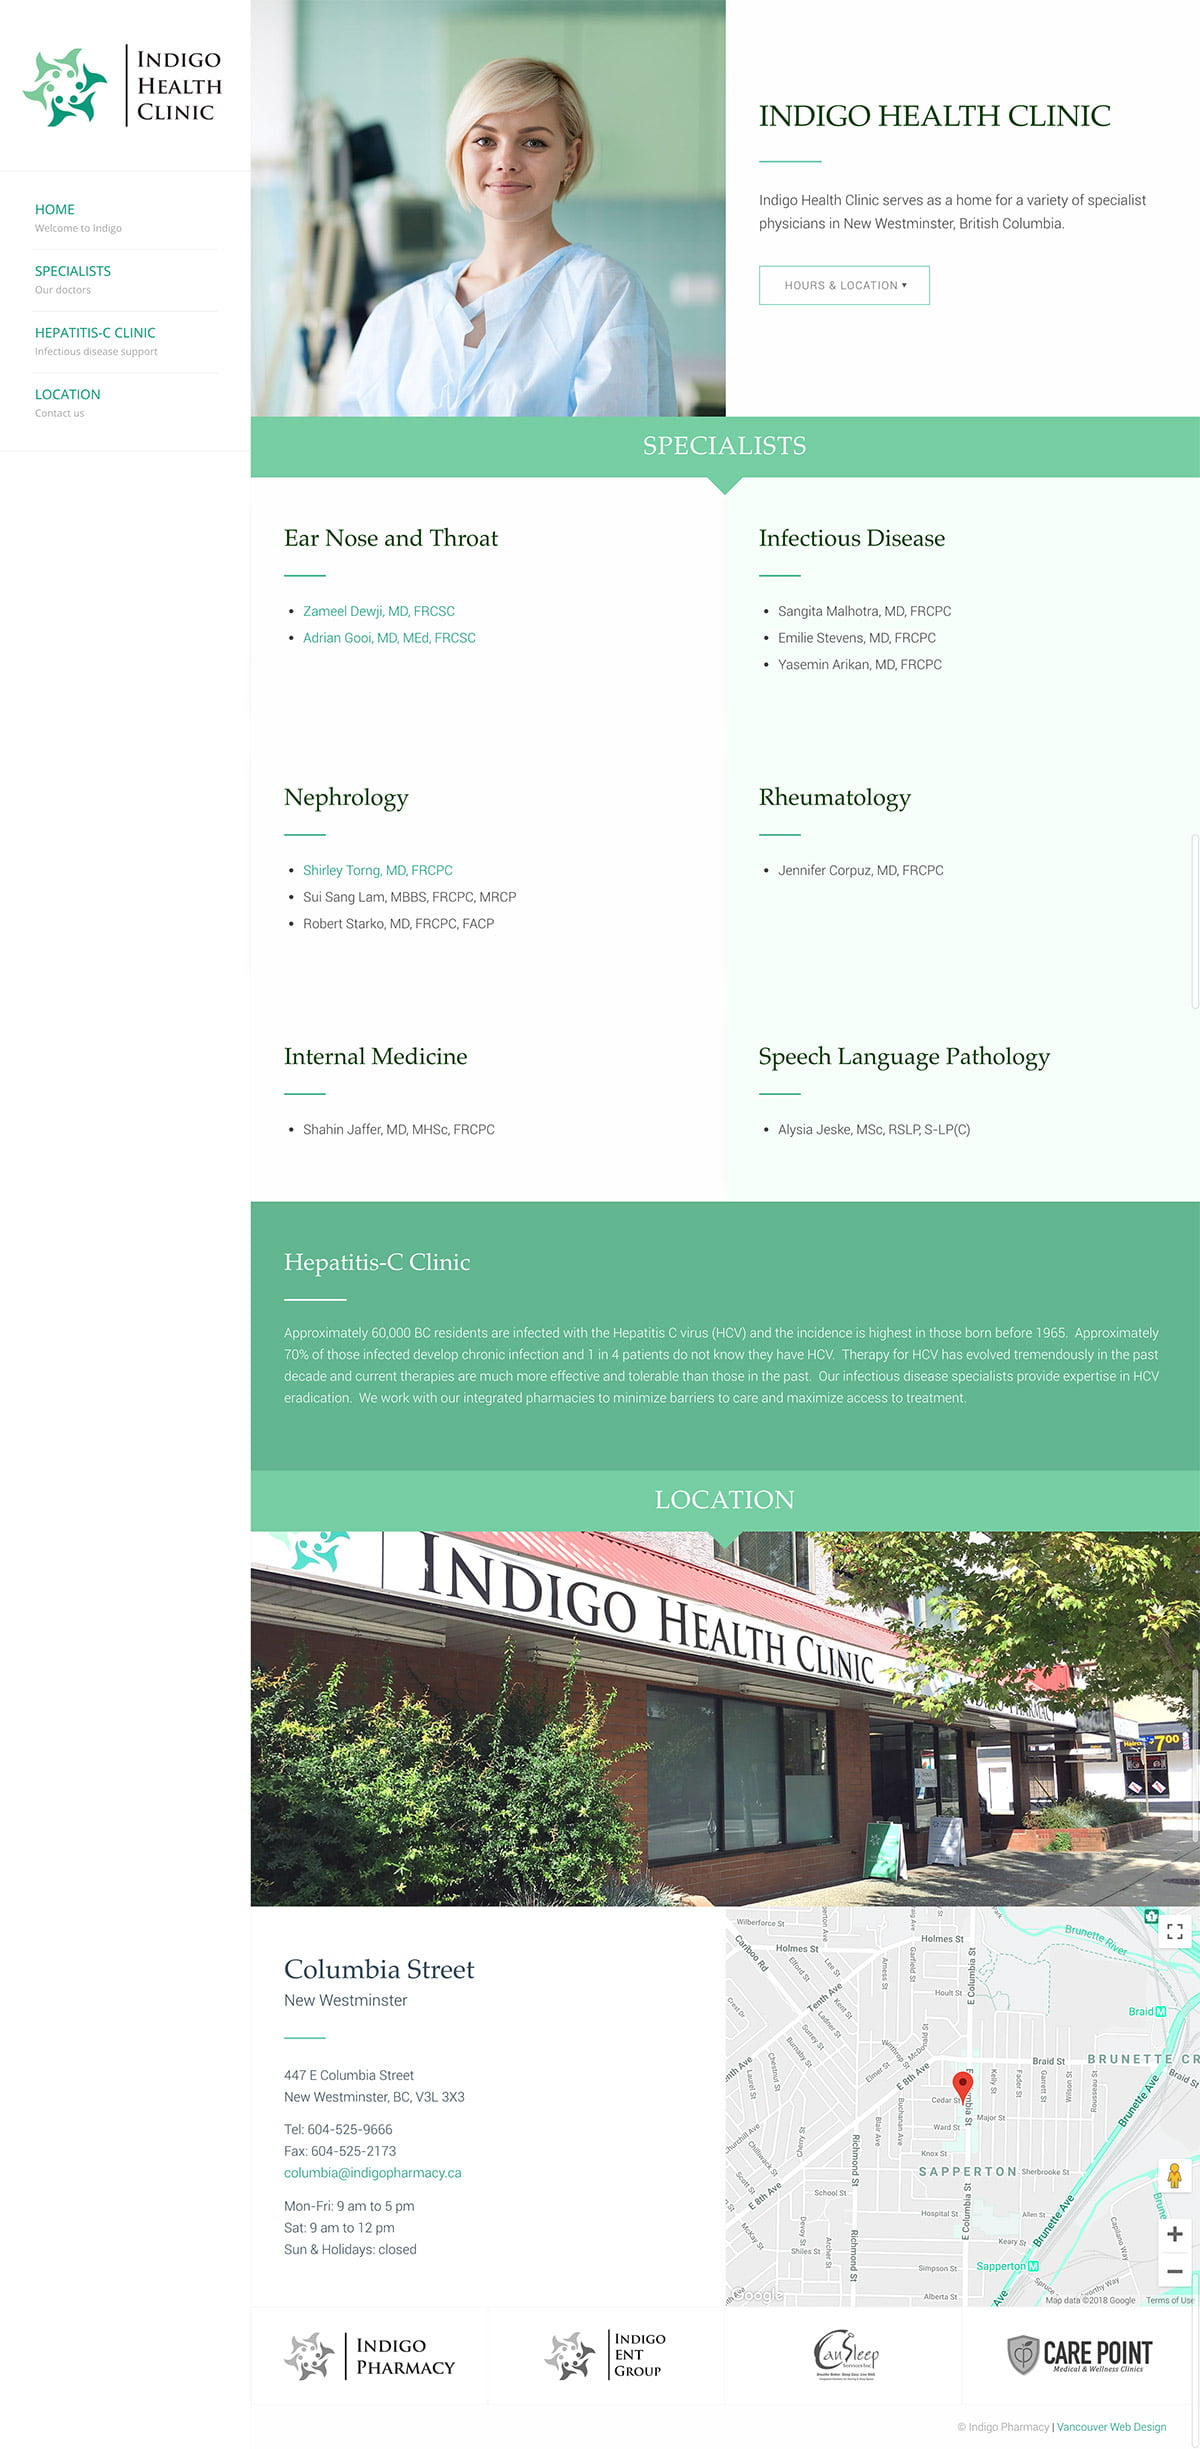 Indigo-Health-Clinic-1200